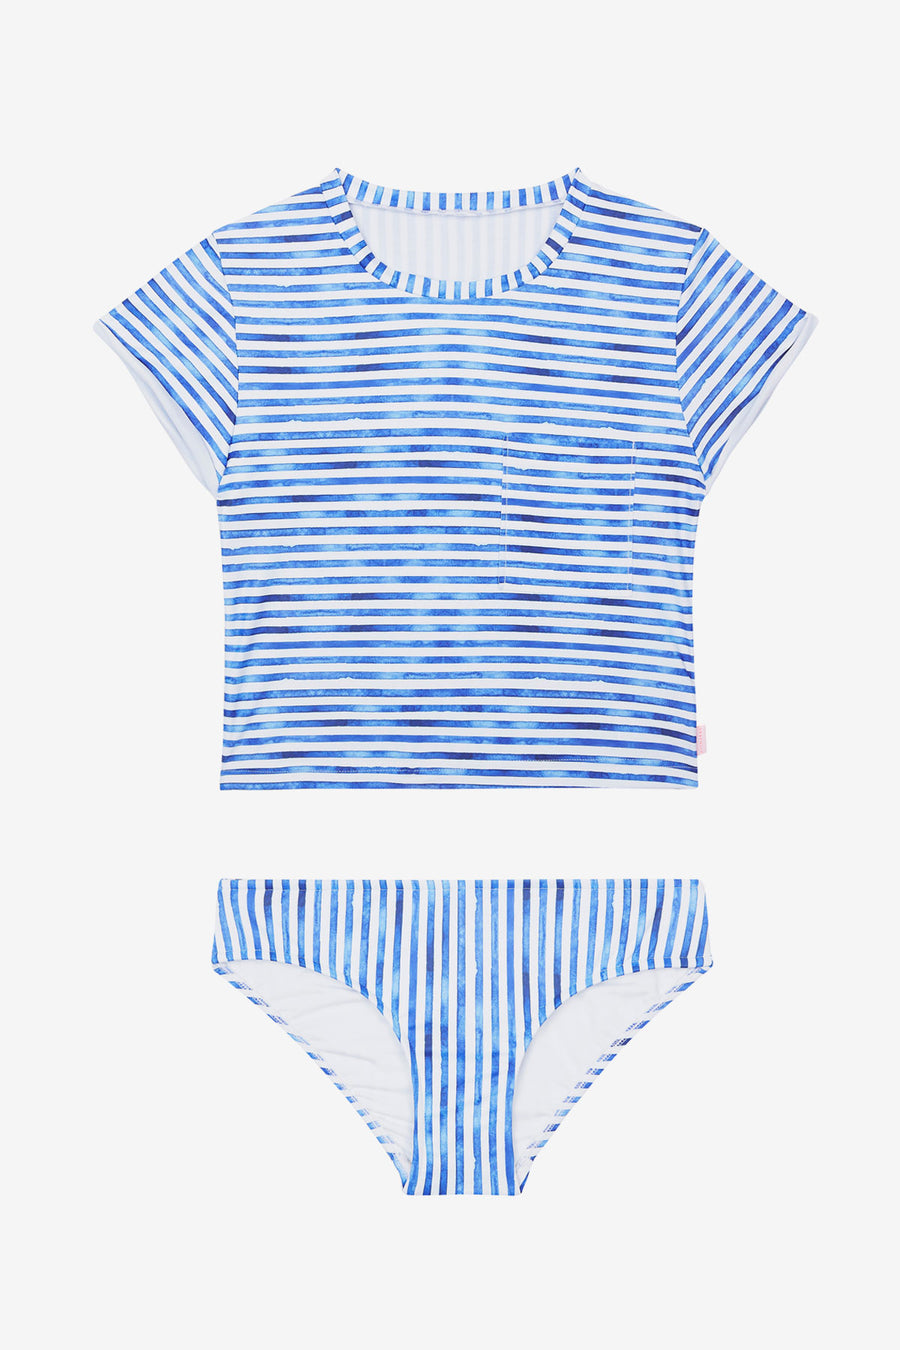 Seafolly Tropical Vibes Surf Set